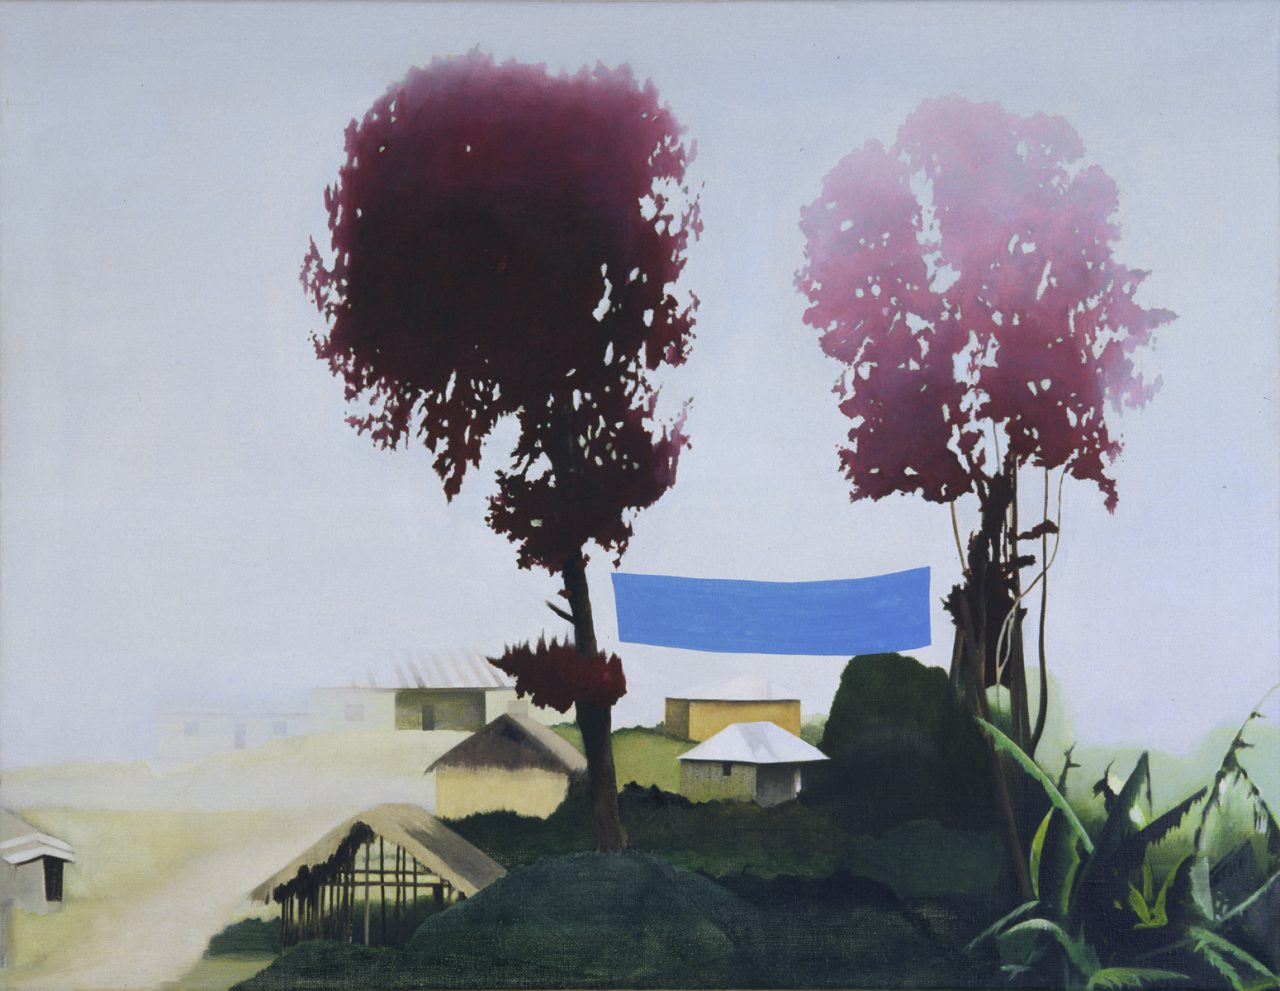 Ukalawa #1, 2006, Oil on canvas, 60 x 80 cm, Private collection